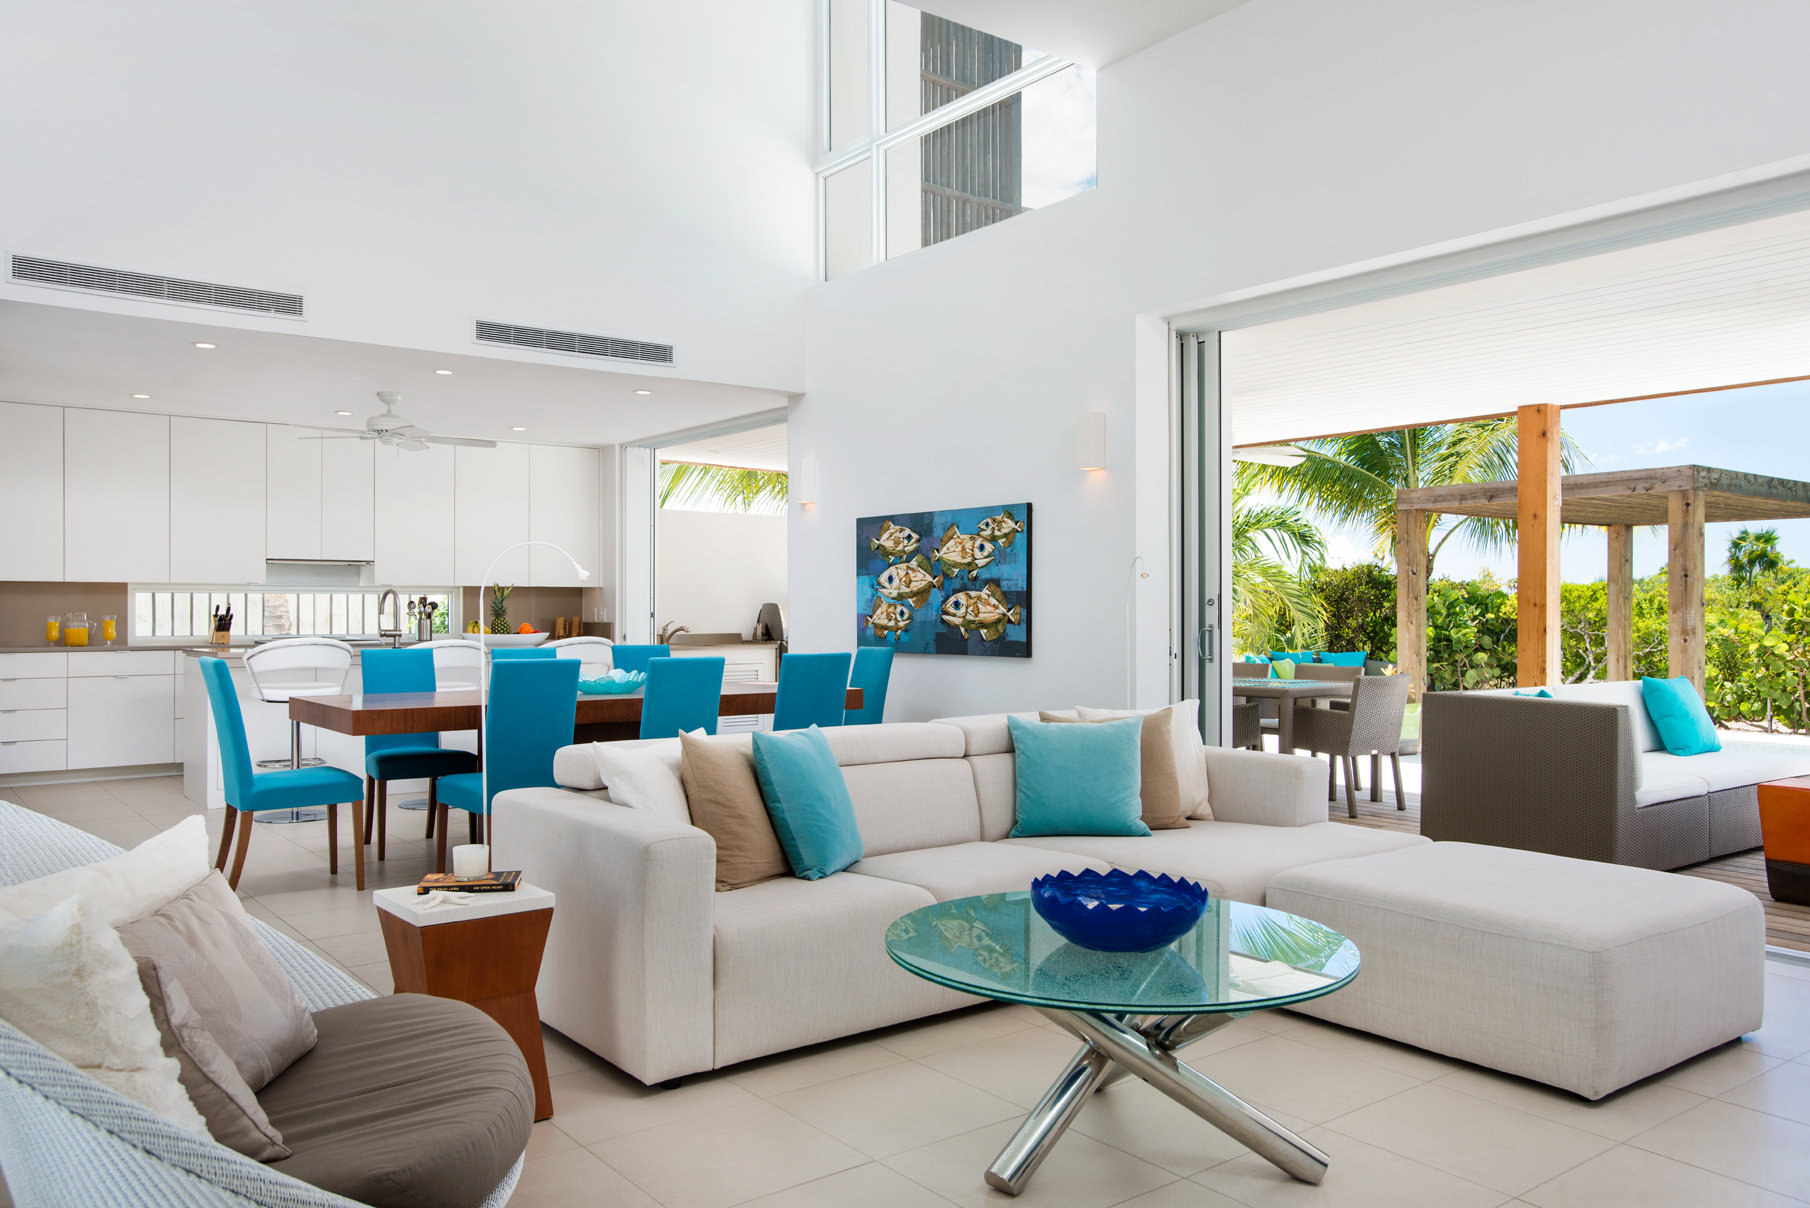 Single Family Home for Sale at Sunset Beach Villas - Design B Gardenview Leeward, TC Turks And Caicos Islands